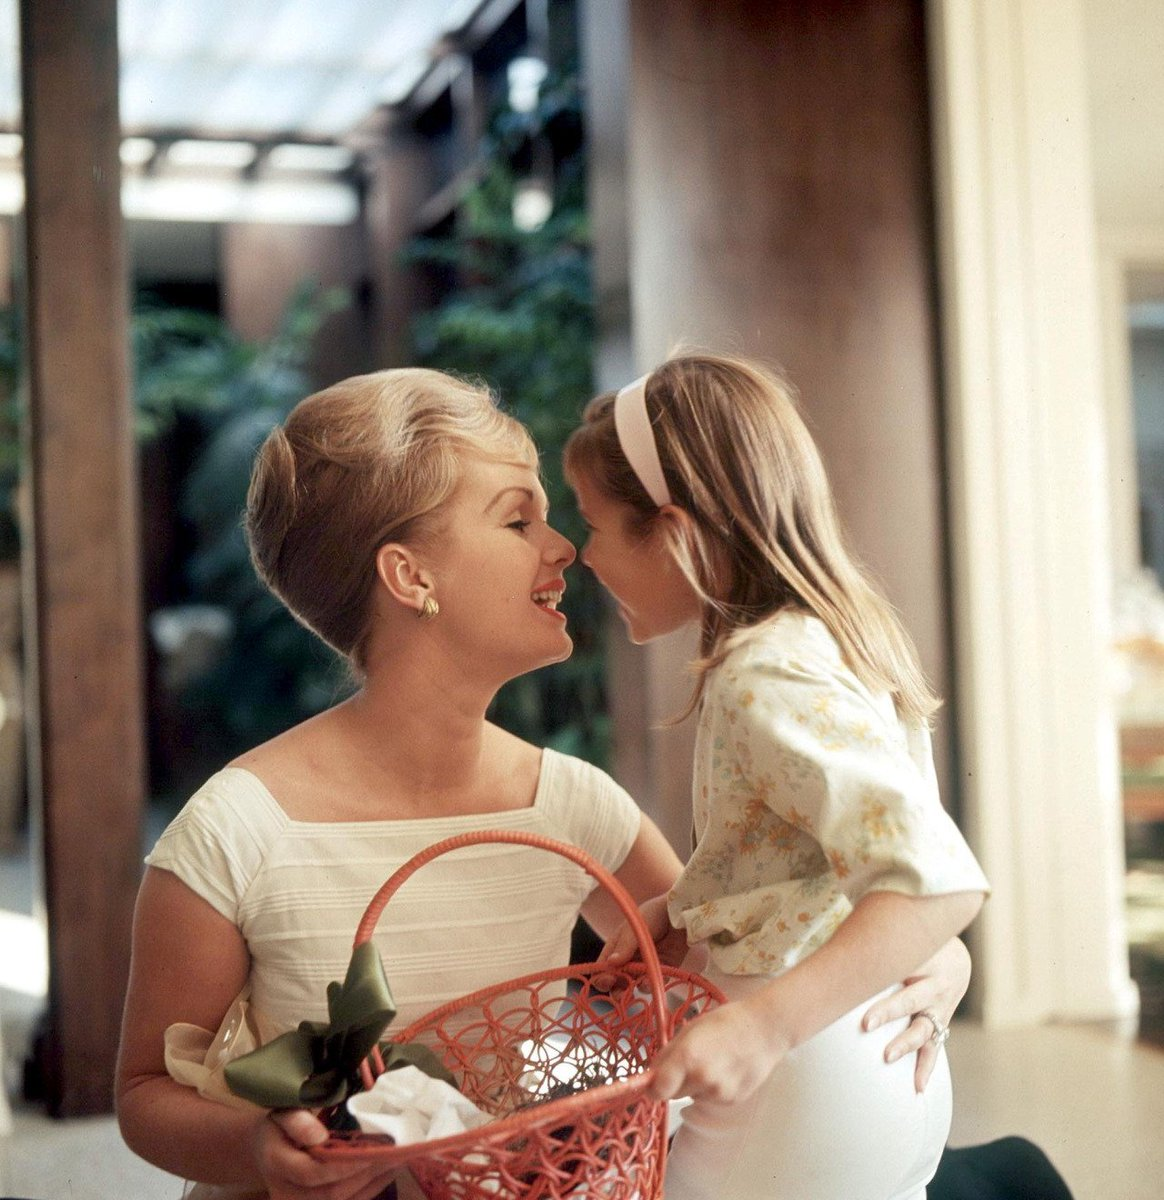 Photos: Debbie Reynolds and her daughter, Carrie Fisher, photographed in the 1960s - https://t.co/Qctgw6G1ho